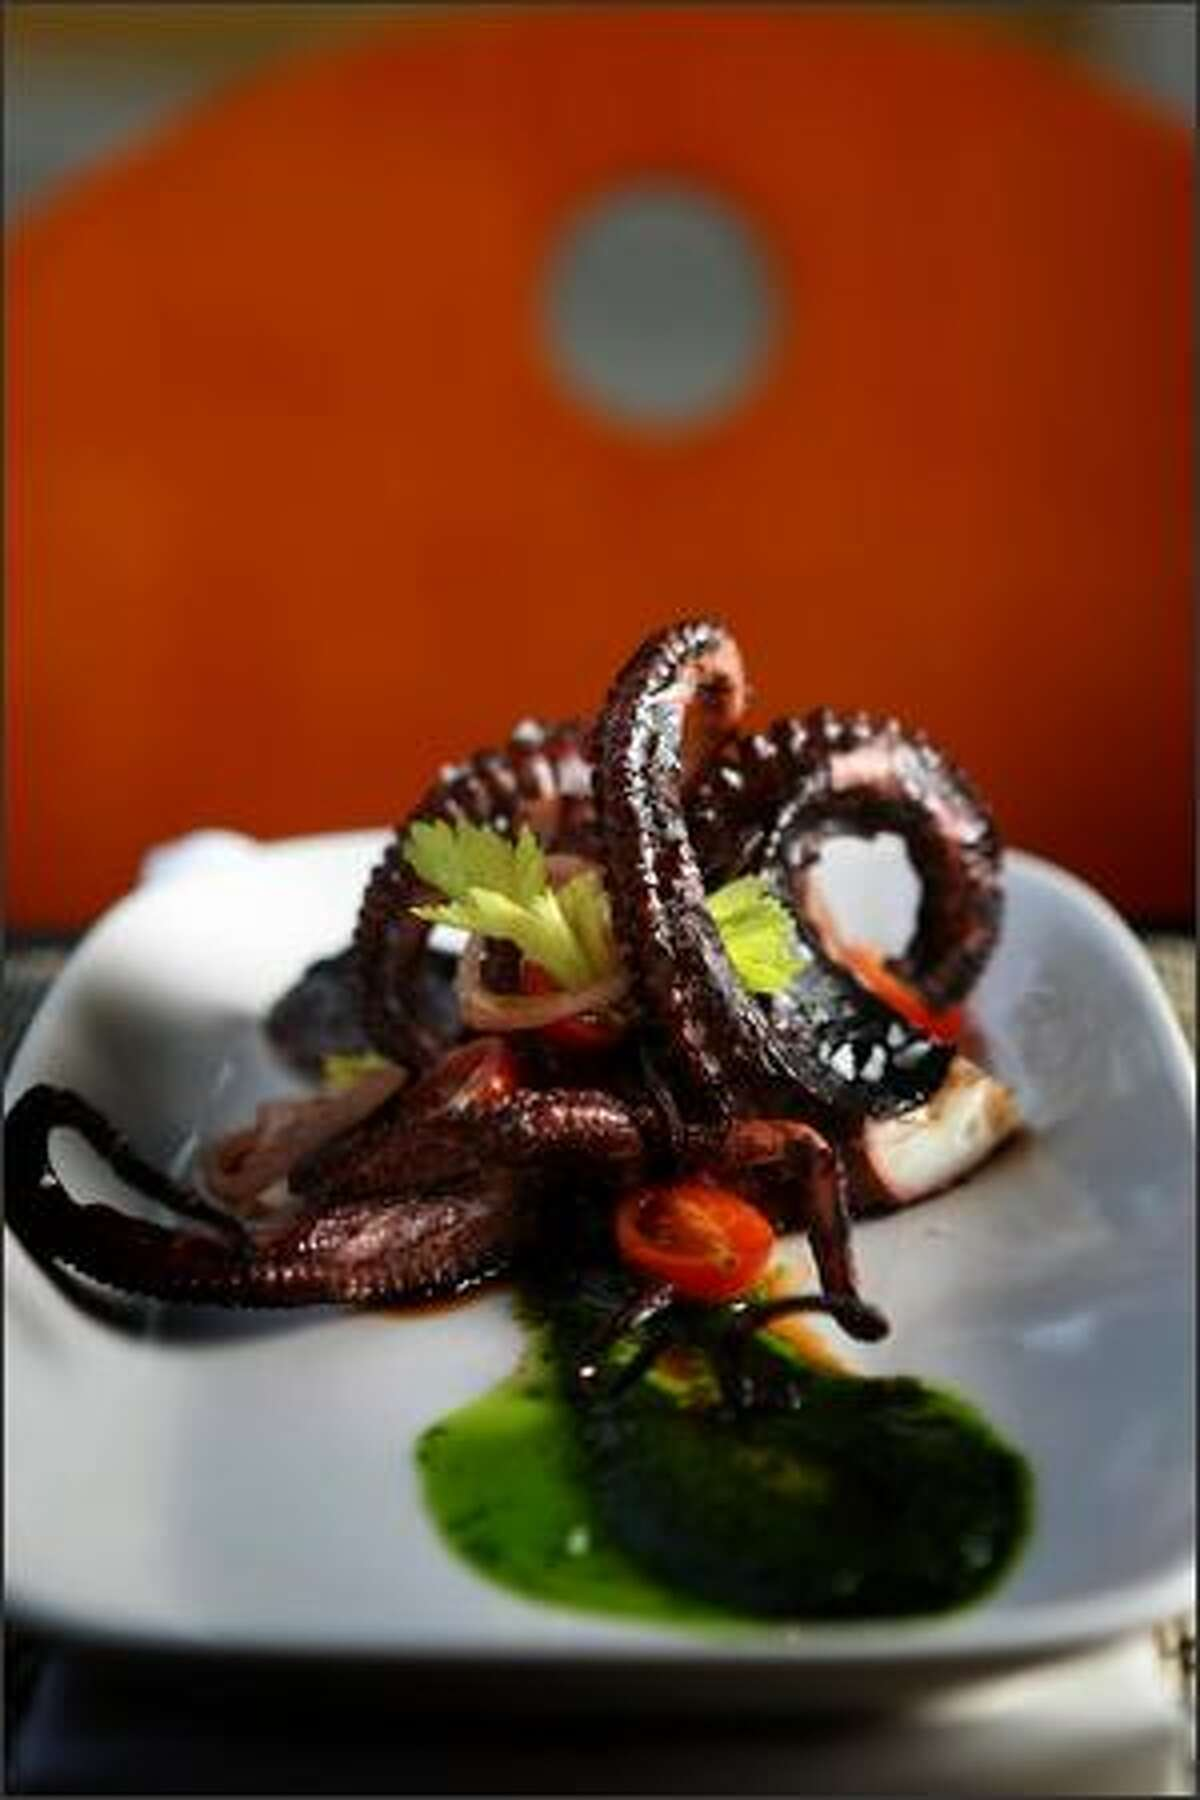 Joule's grilled octopus is deliciously tender and served with Chinese celery pistou. Since the restaurant opened last fall, its chefs have made its avant-garde menu more approachable without sacrificing their sense of culinary adventure.